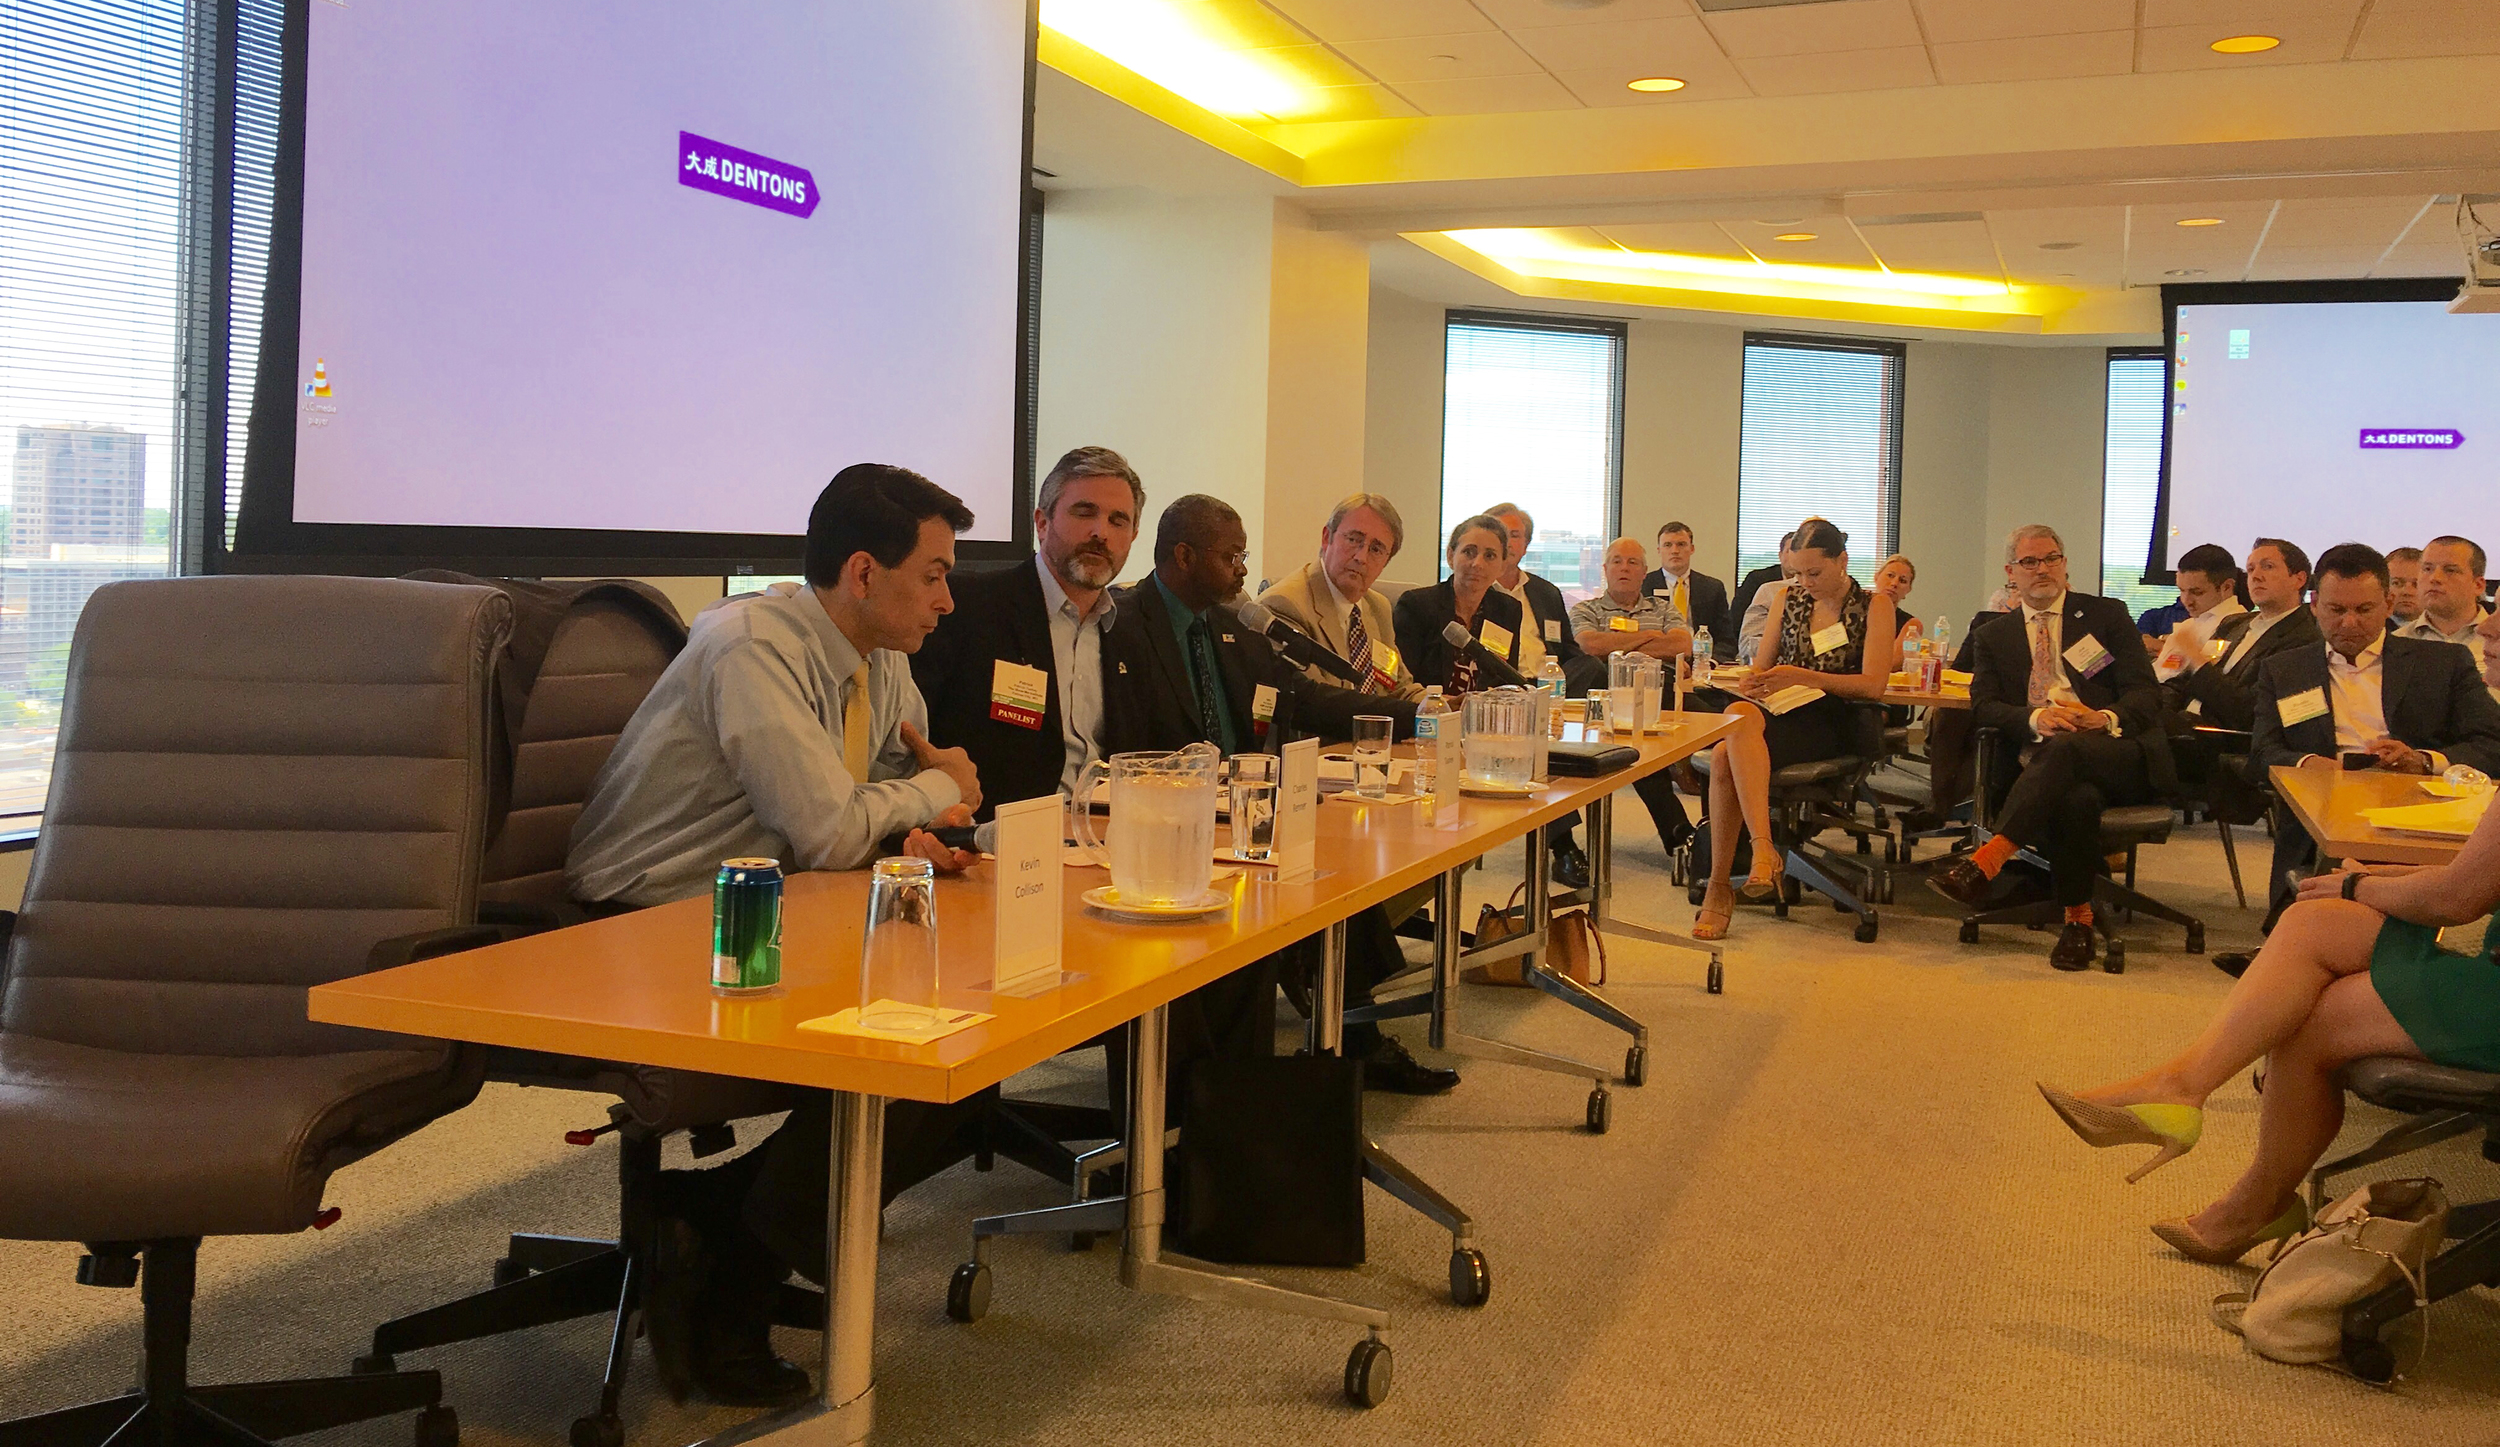 ULI hosted a panel of experts to discuss economic development incentives in Kansas City.